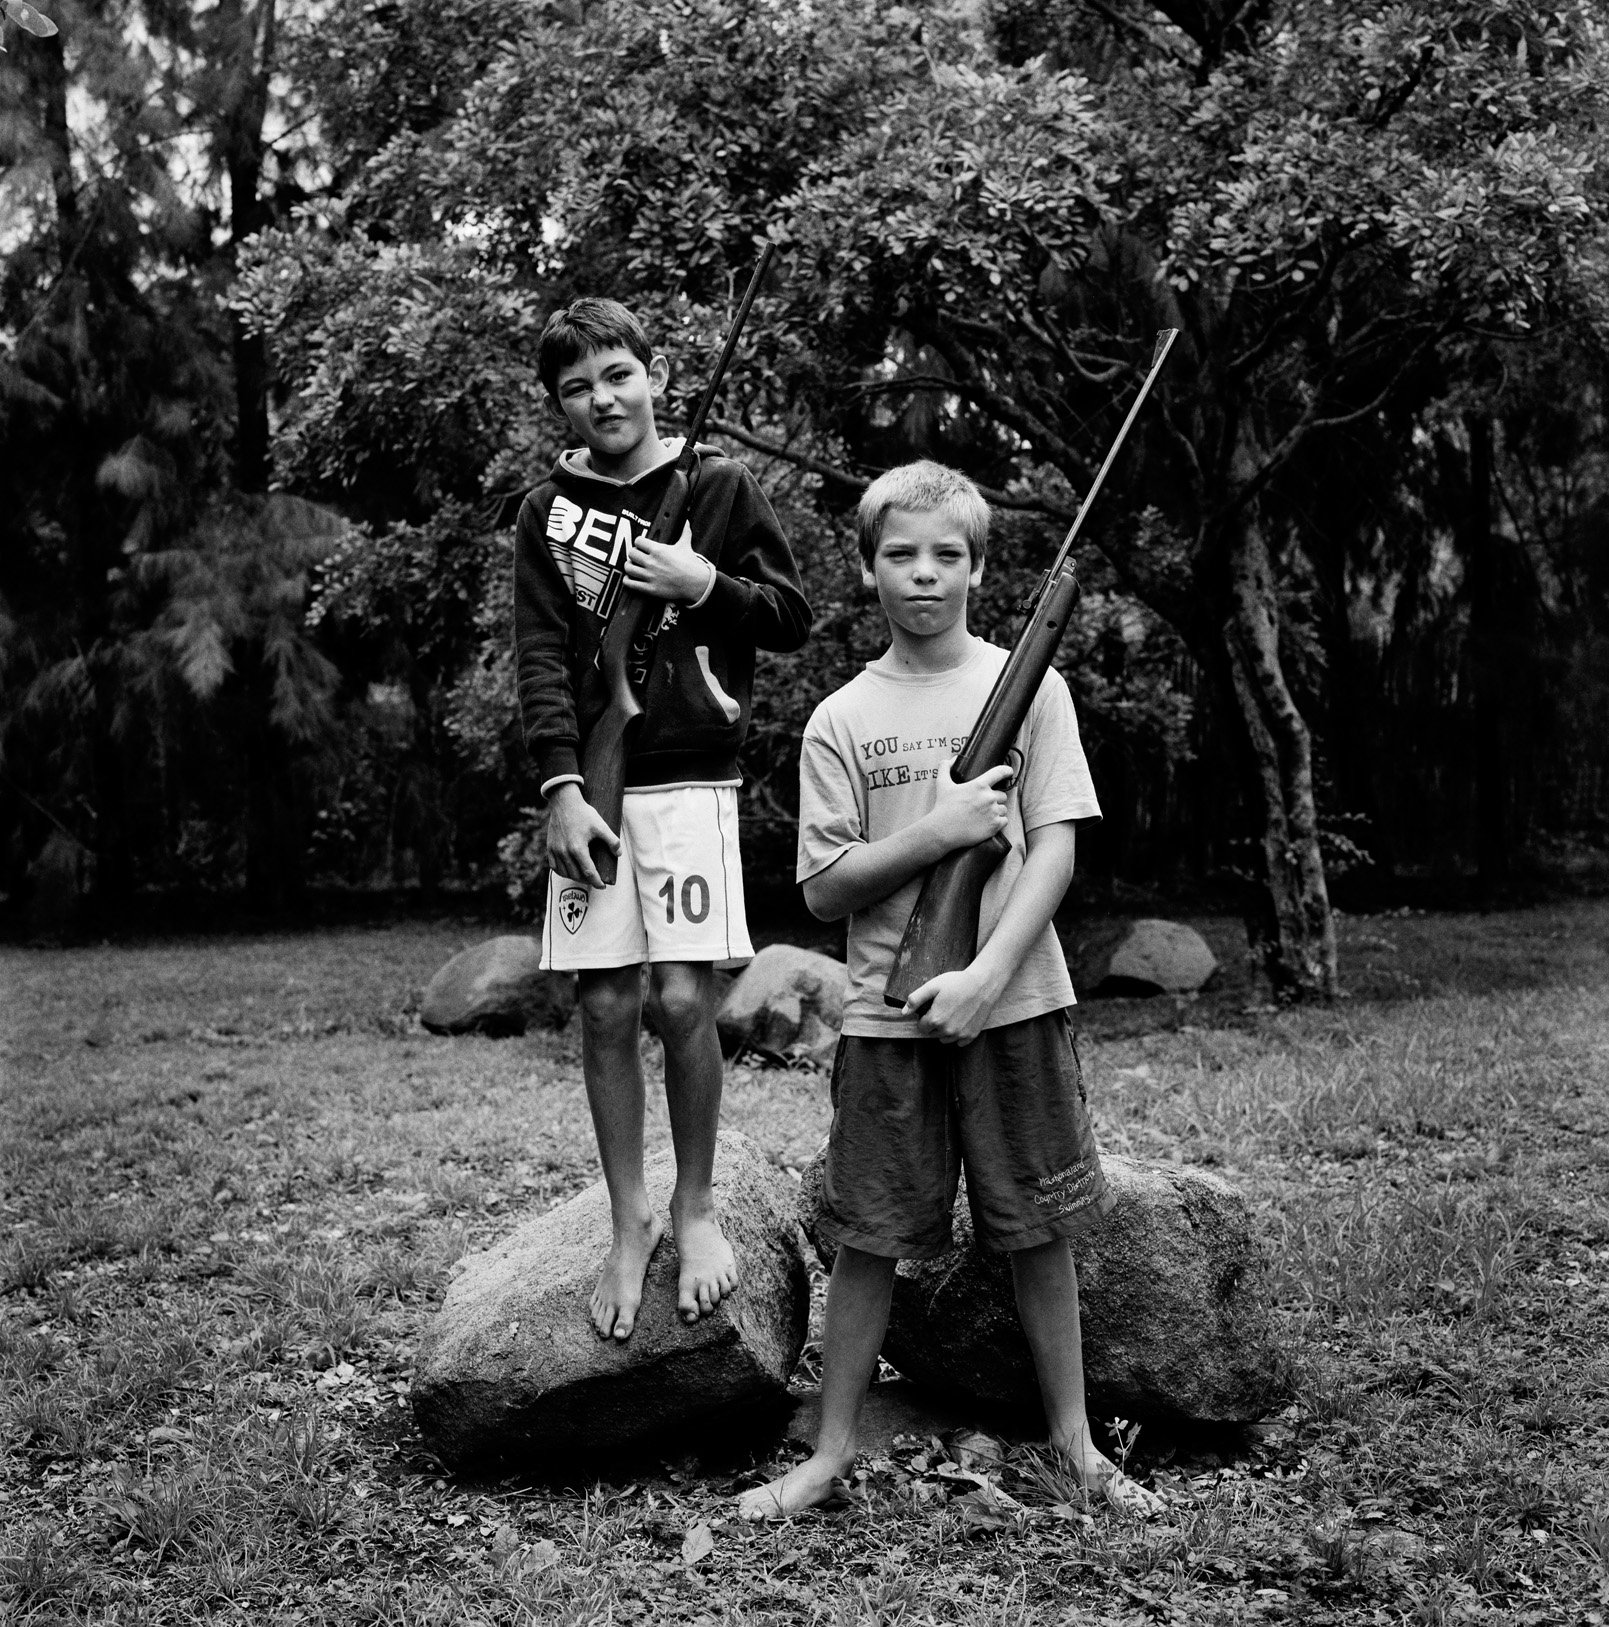 5. Katharine Cooper, Boys with pellet guns on Ledbury Farm, Mazowe, Zimbabwe, 2013, Photo Katharine Cooper_LR.jpg